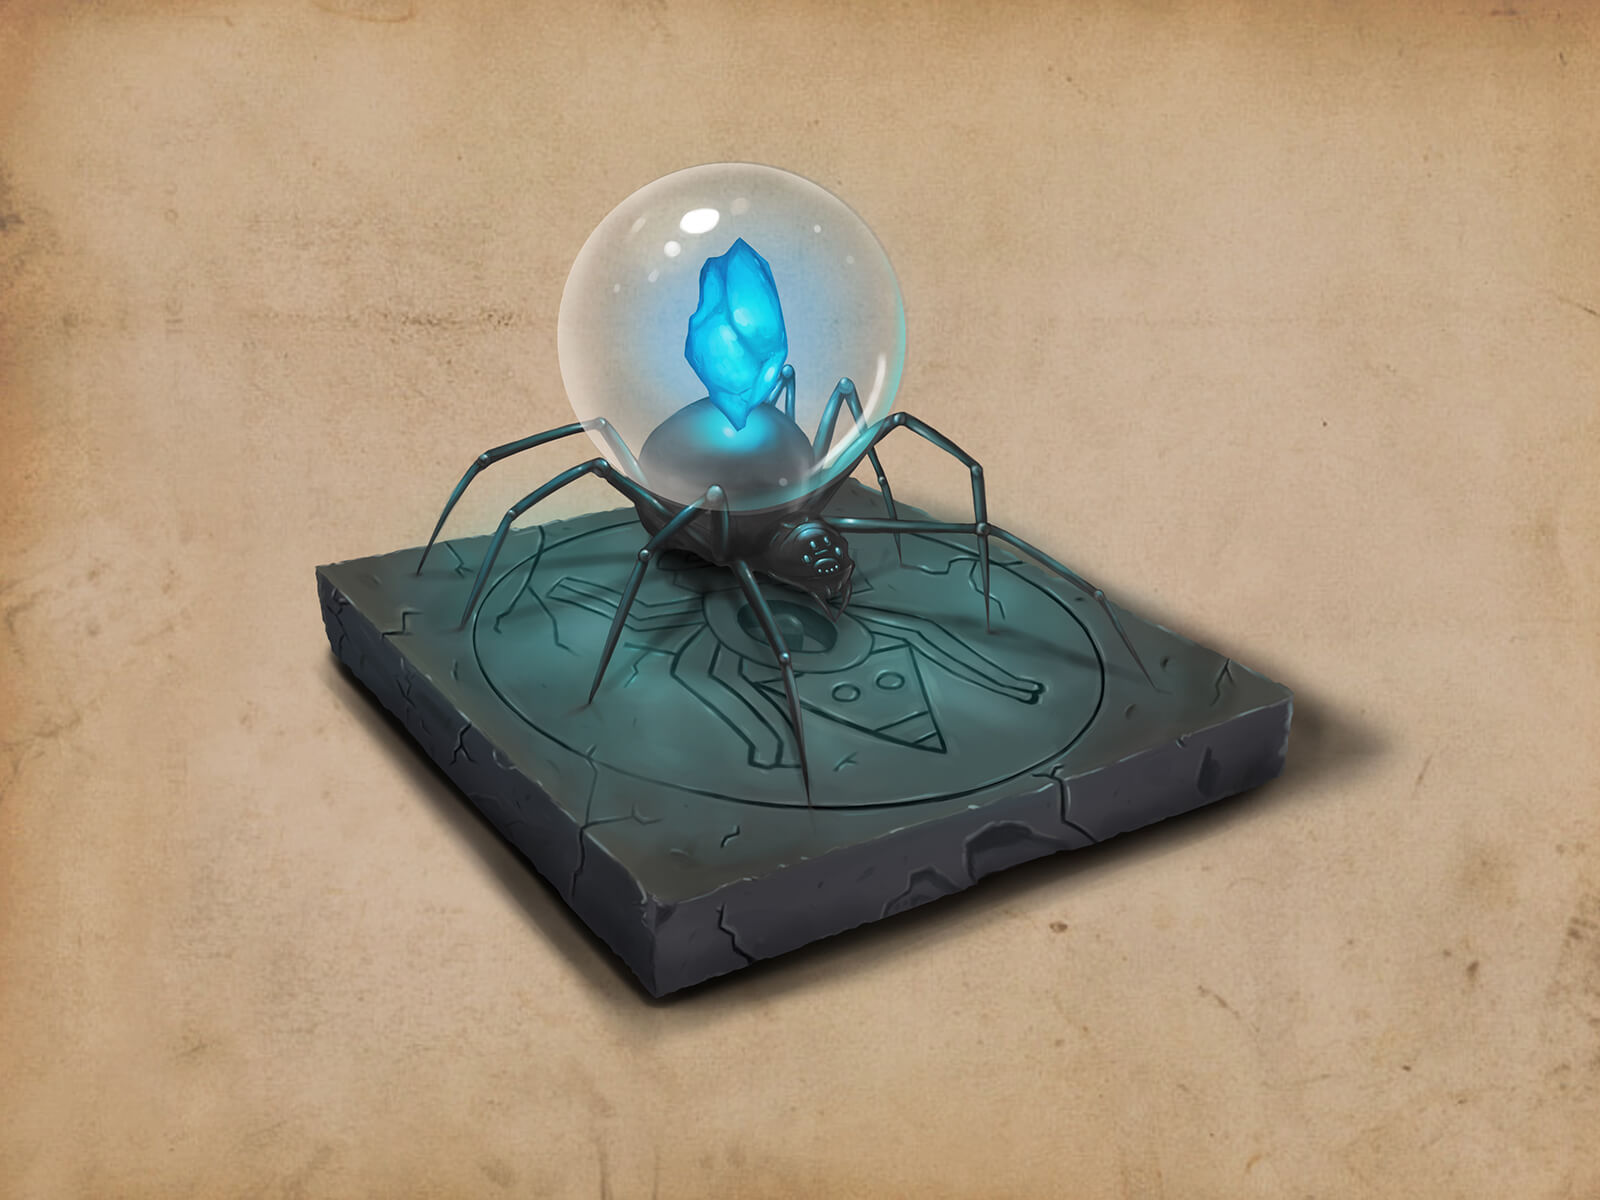 A large black spider with a glowing blue shard on its back, resting on a stone slab with a tribal symbol carved into it.